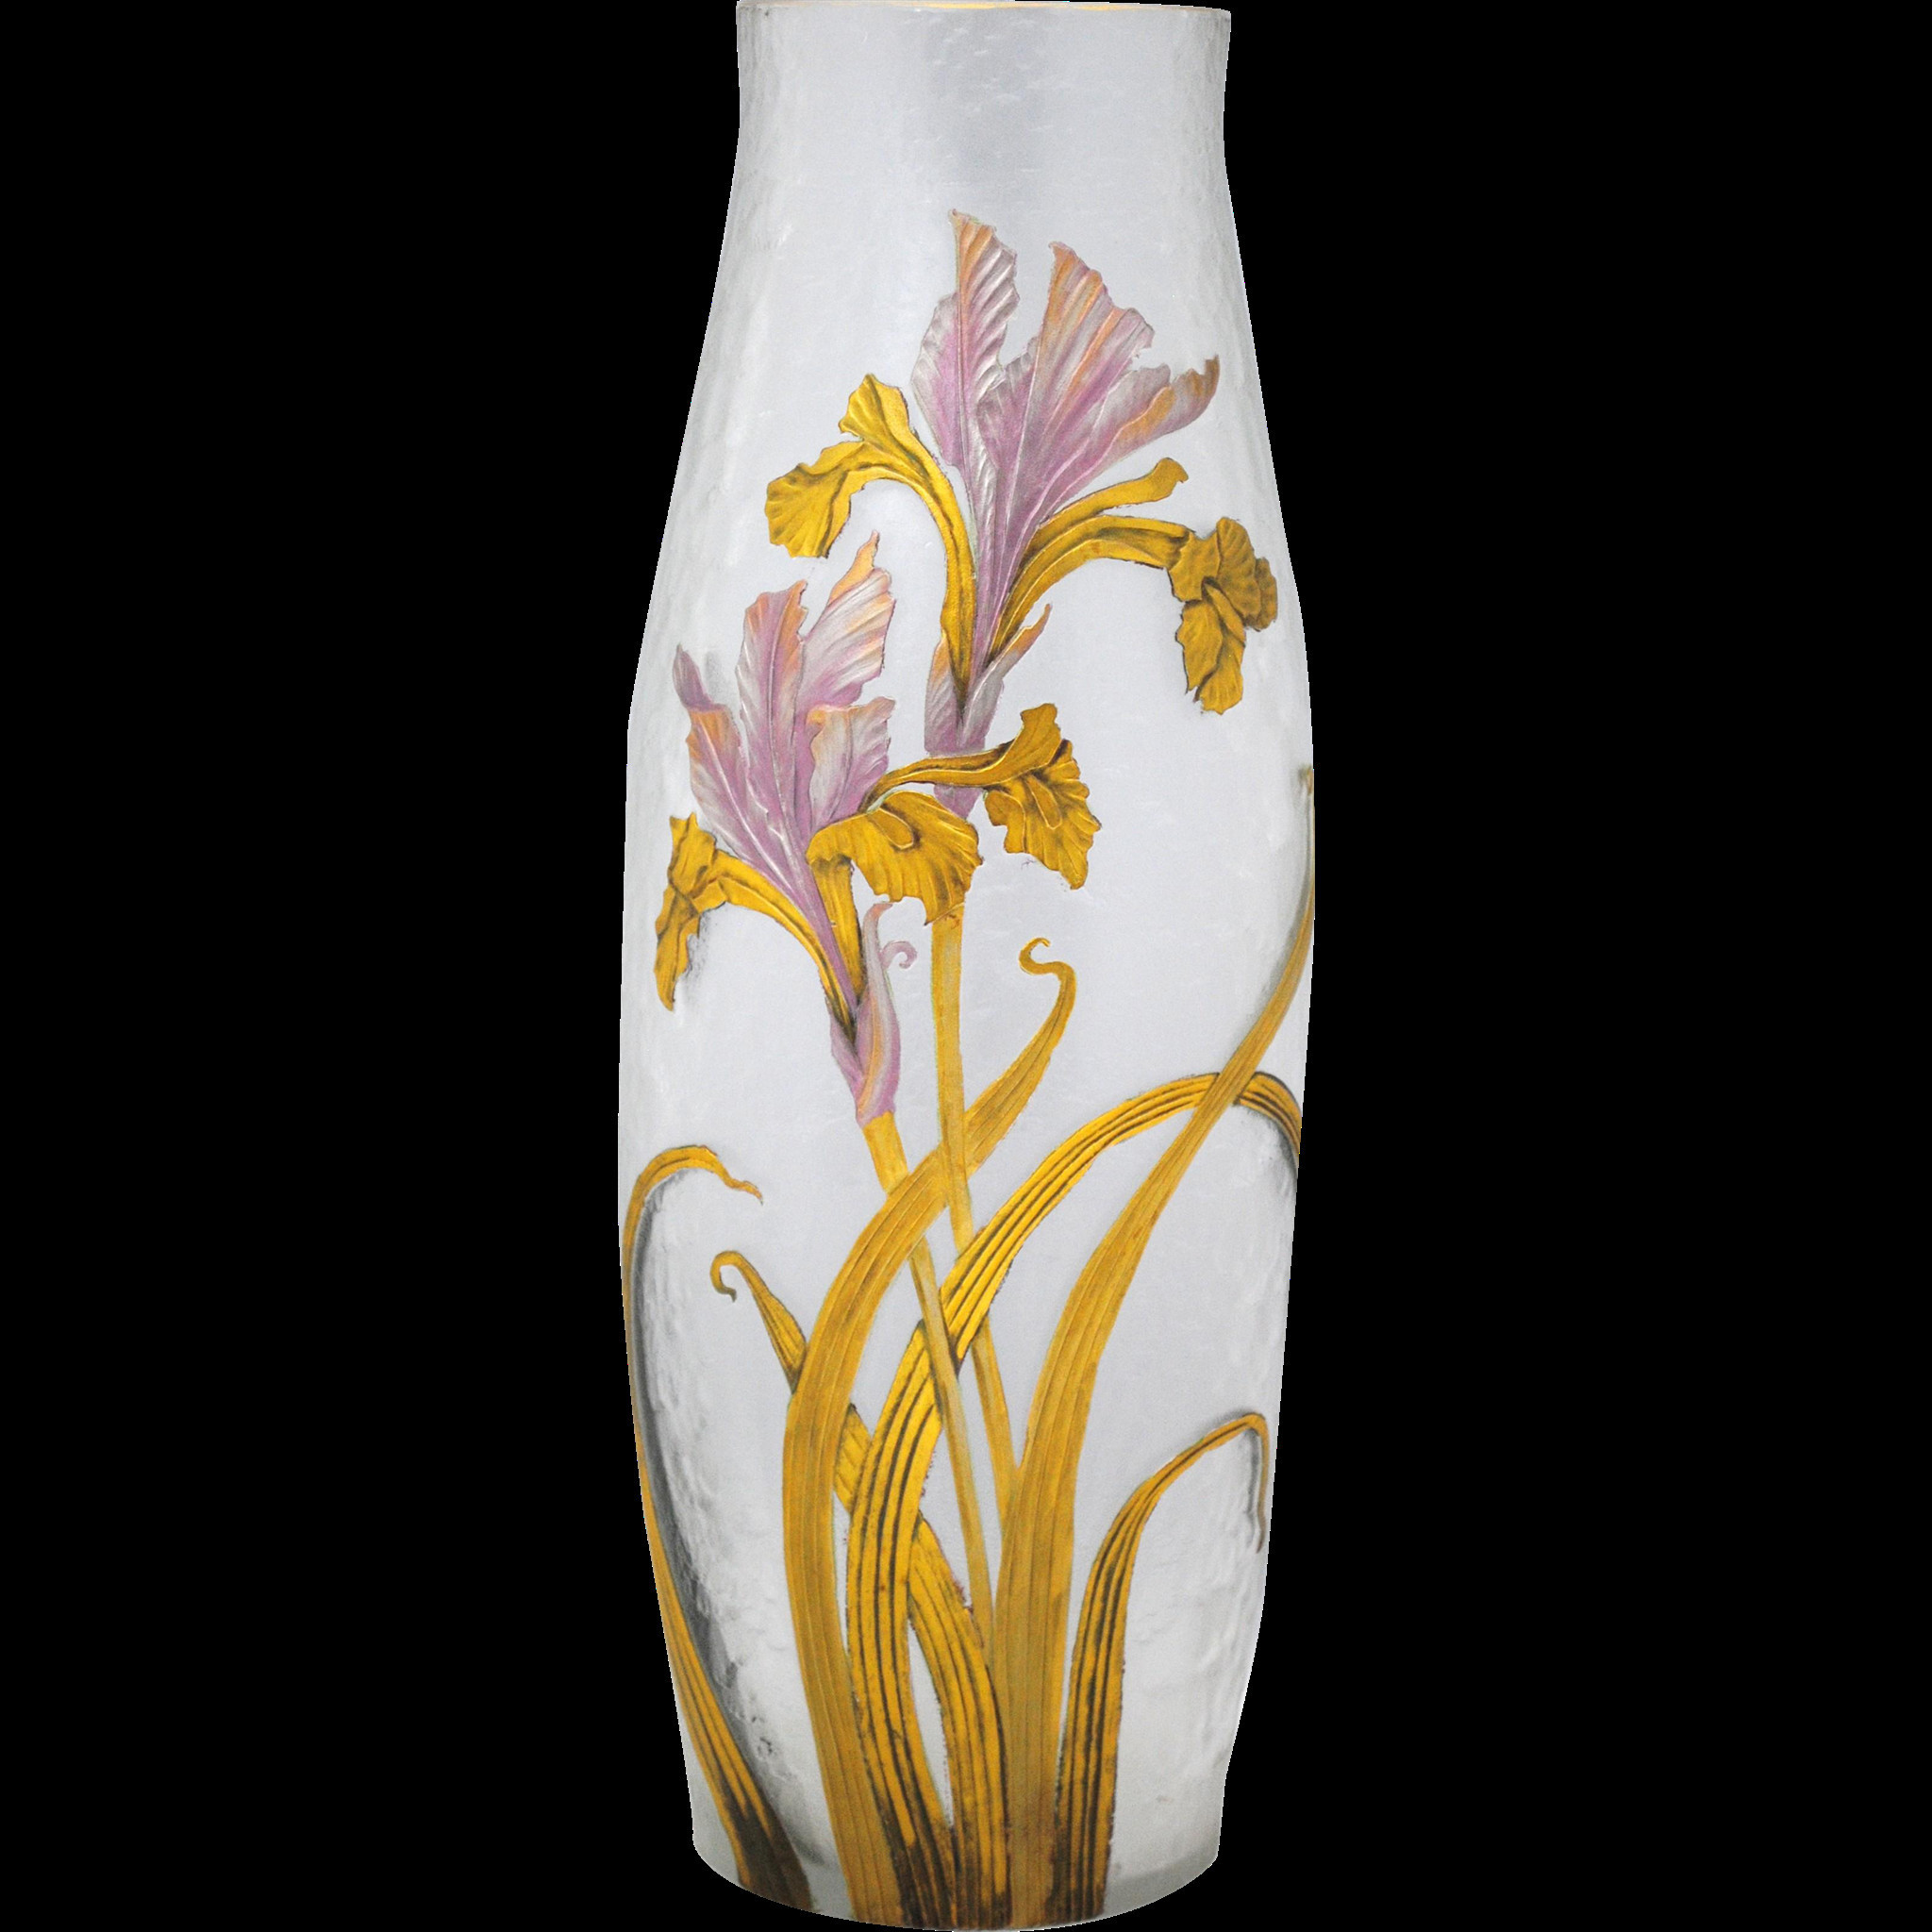 tall yellow glass vase of glass wall art and decor best of metal wall art panels fresh 1 pertaining to glass wall art and decor elegant tall art glass vase fresh metal wall art panels fresh